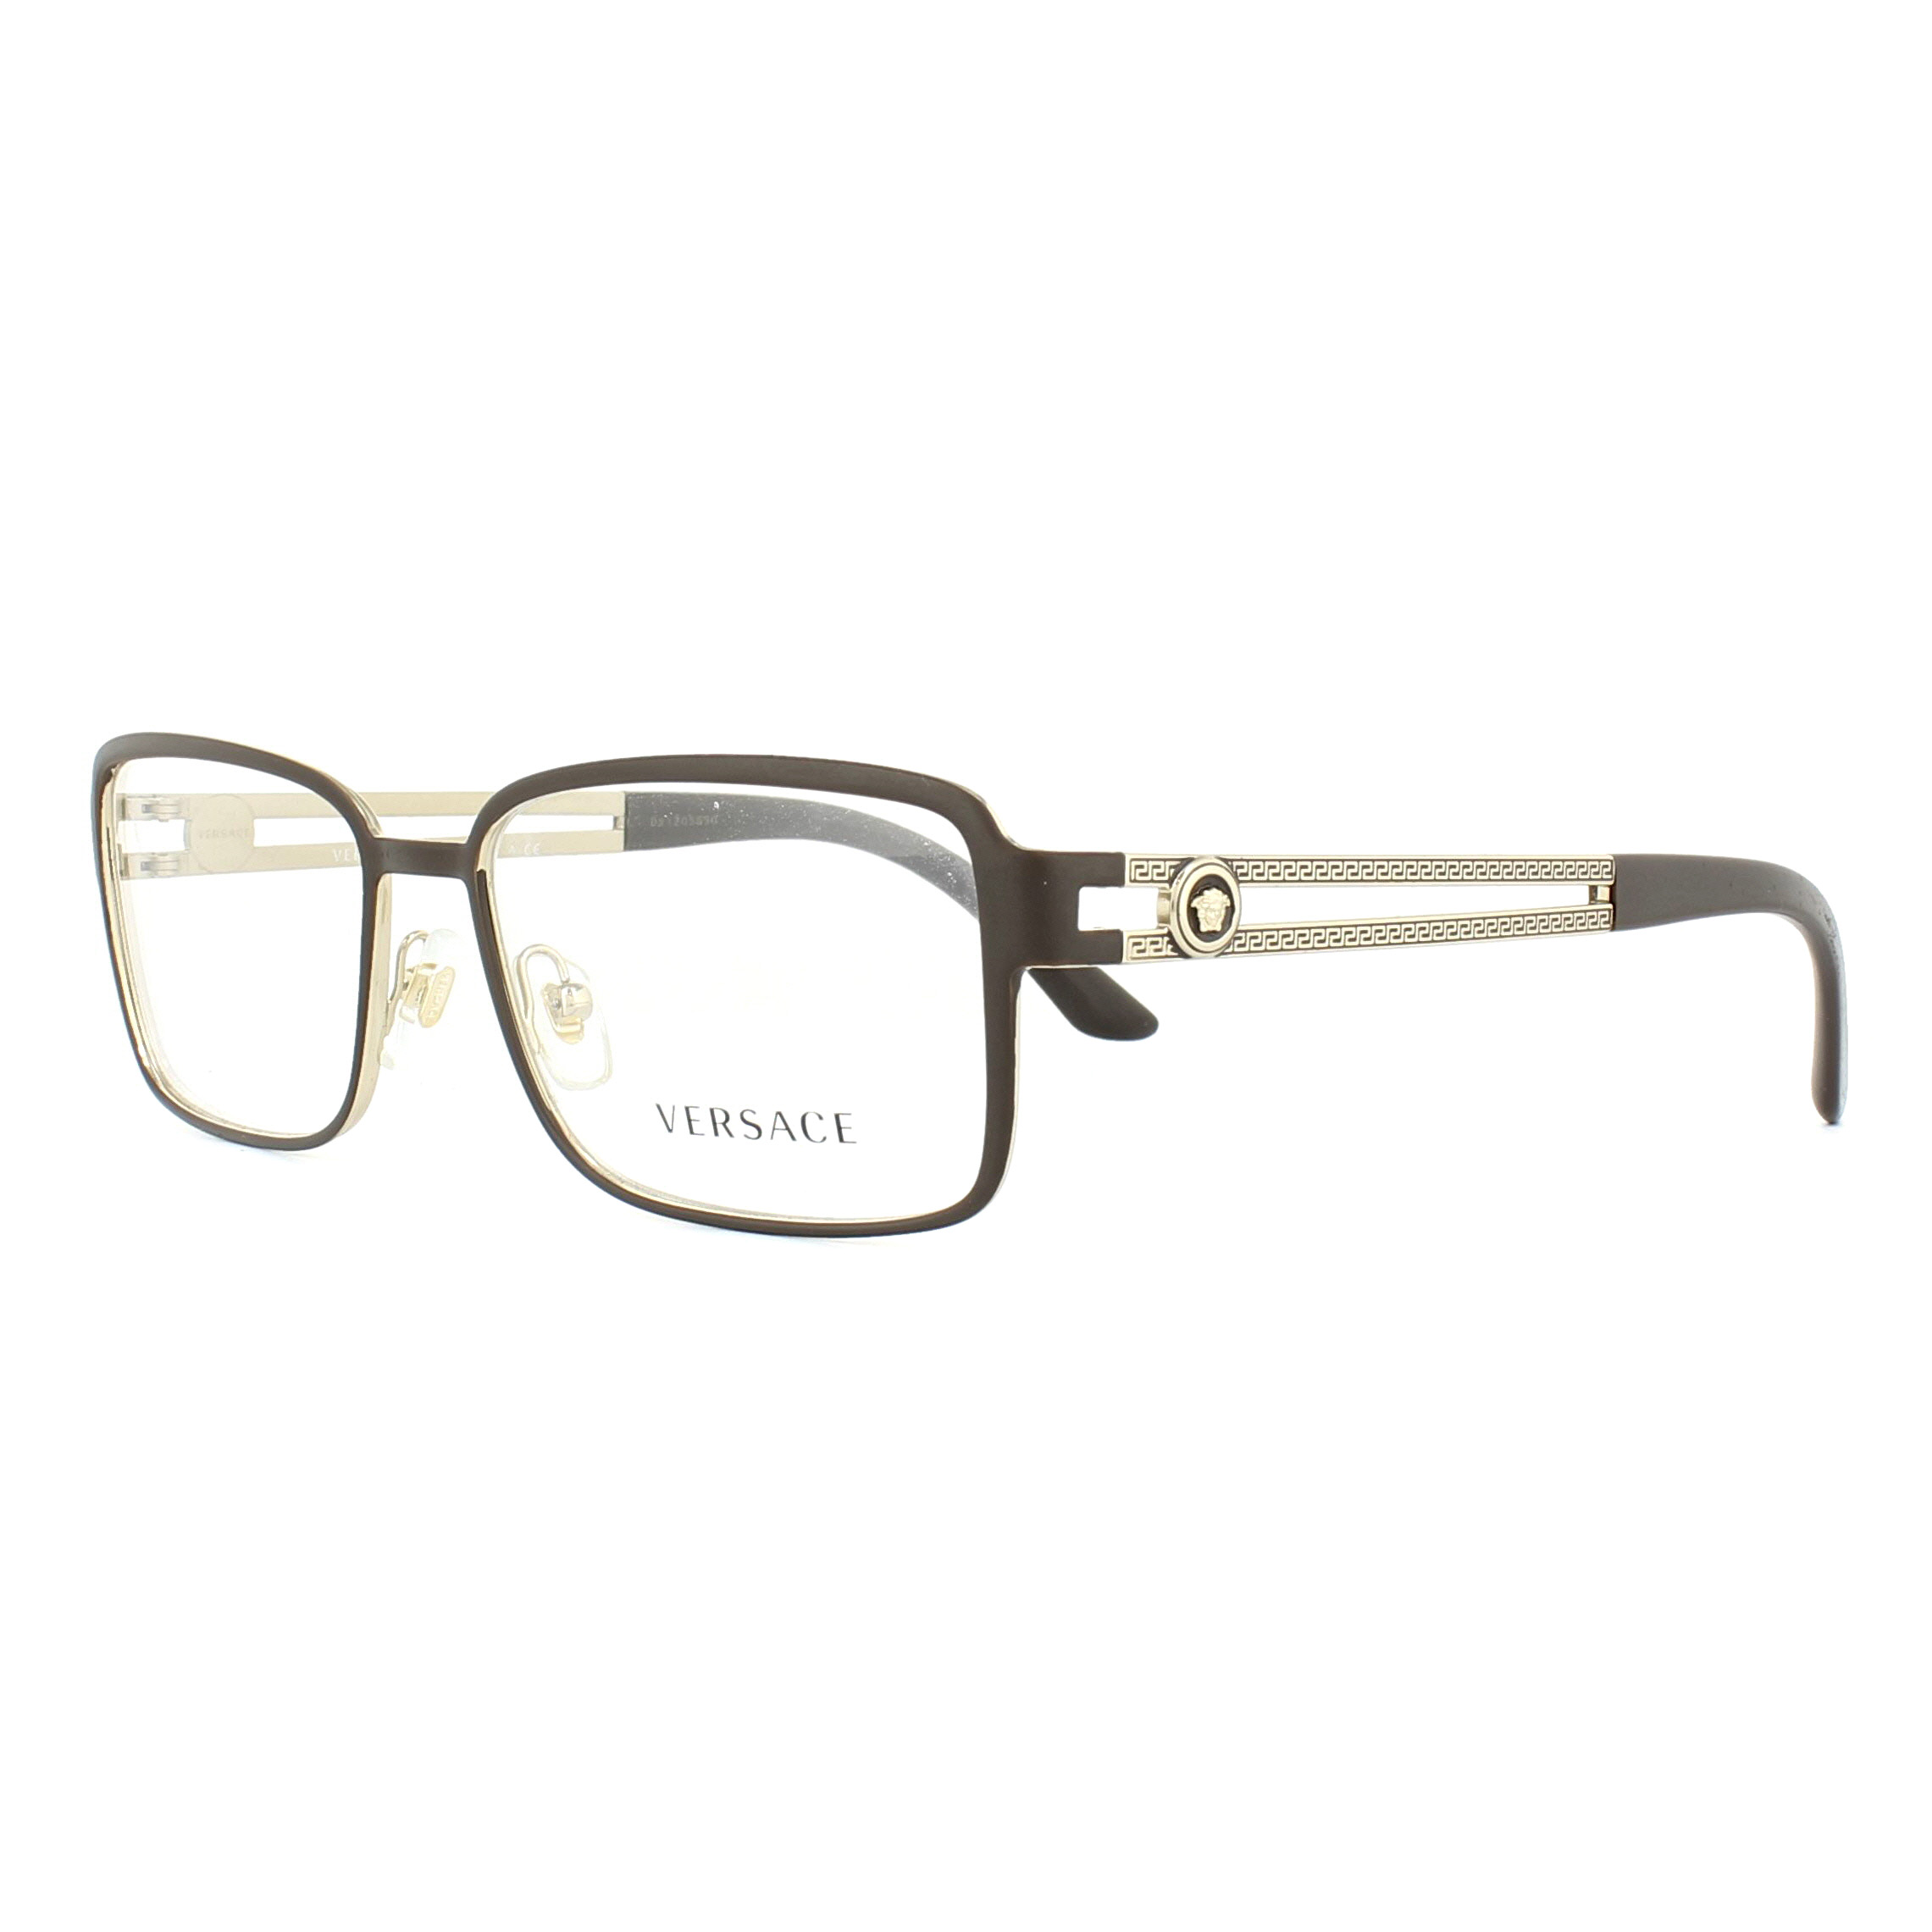 Versace Glasses Frames 1236 1378 Matte Brown and Pale Gold 55mm Mens ...